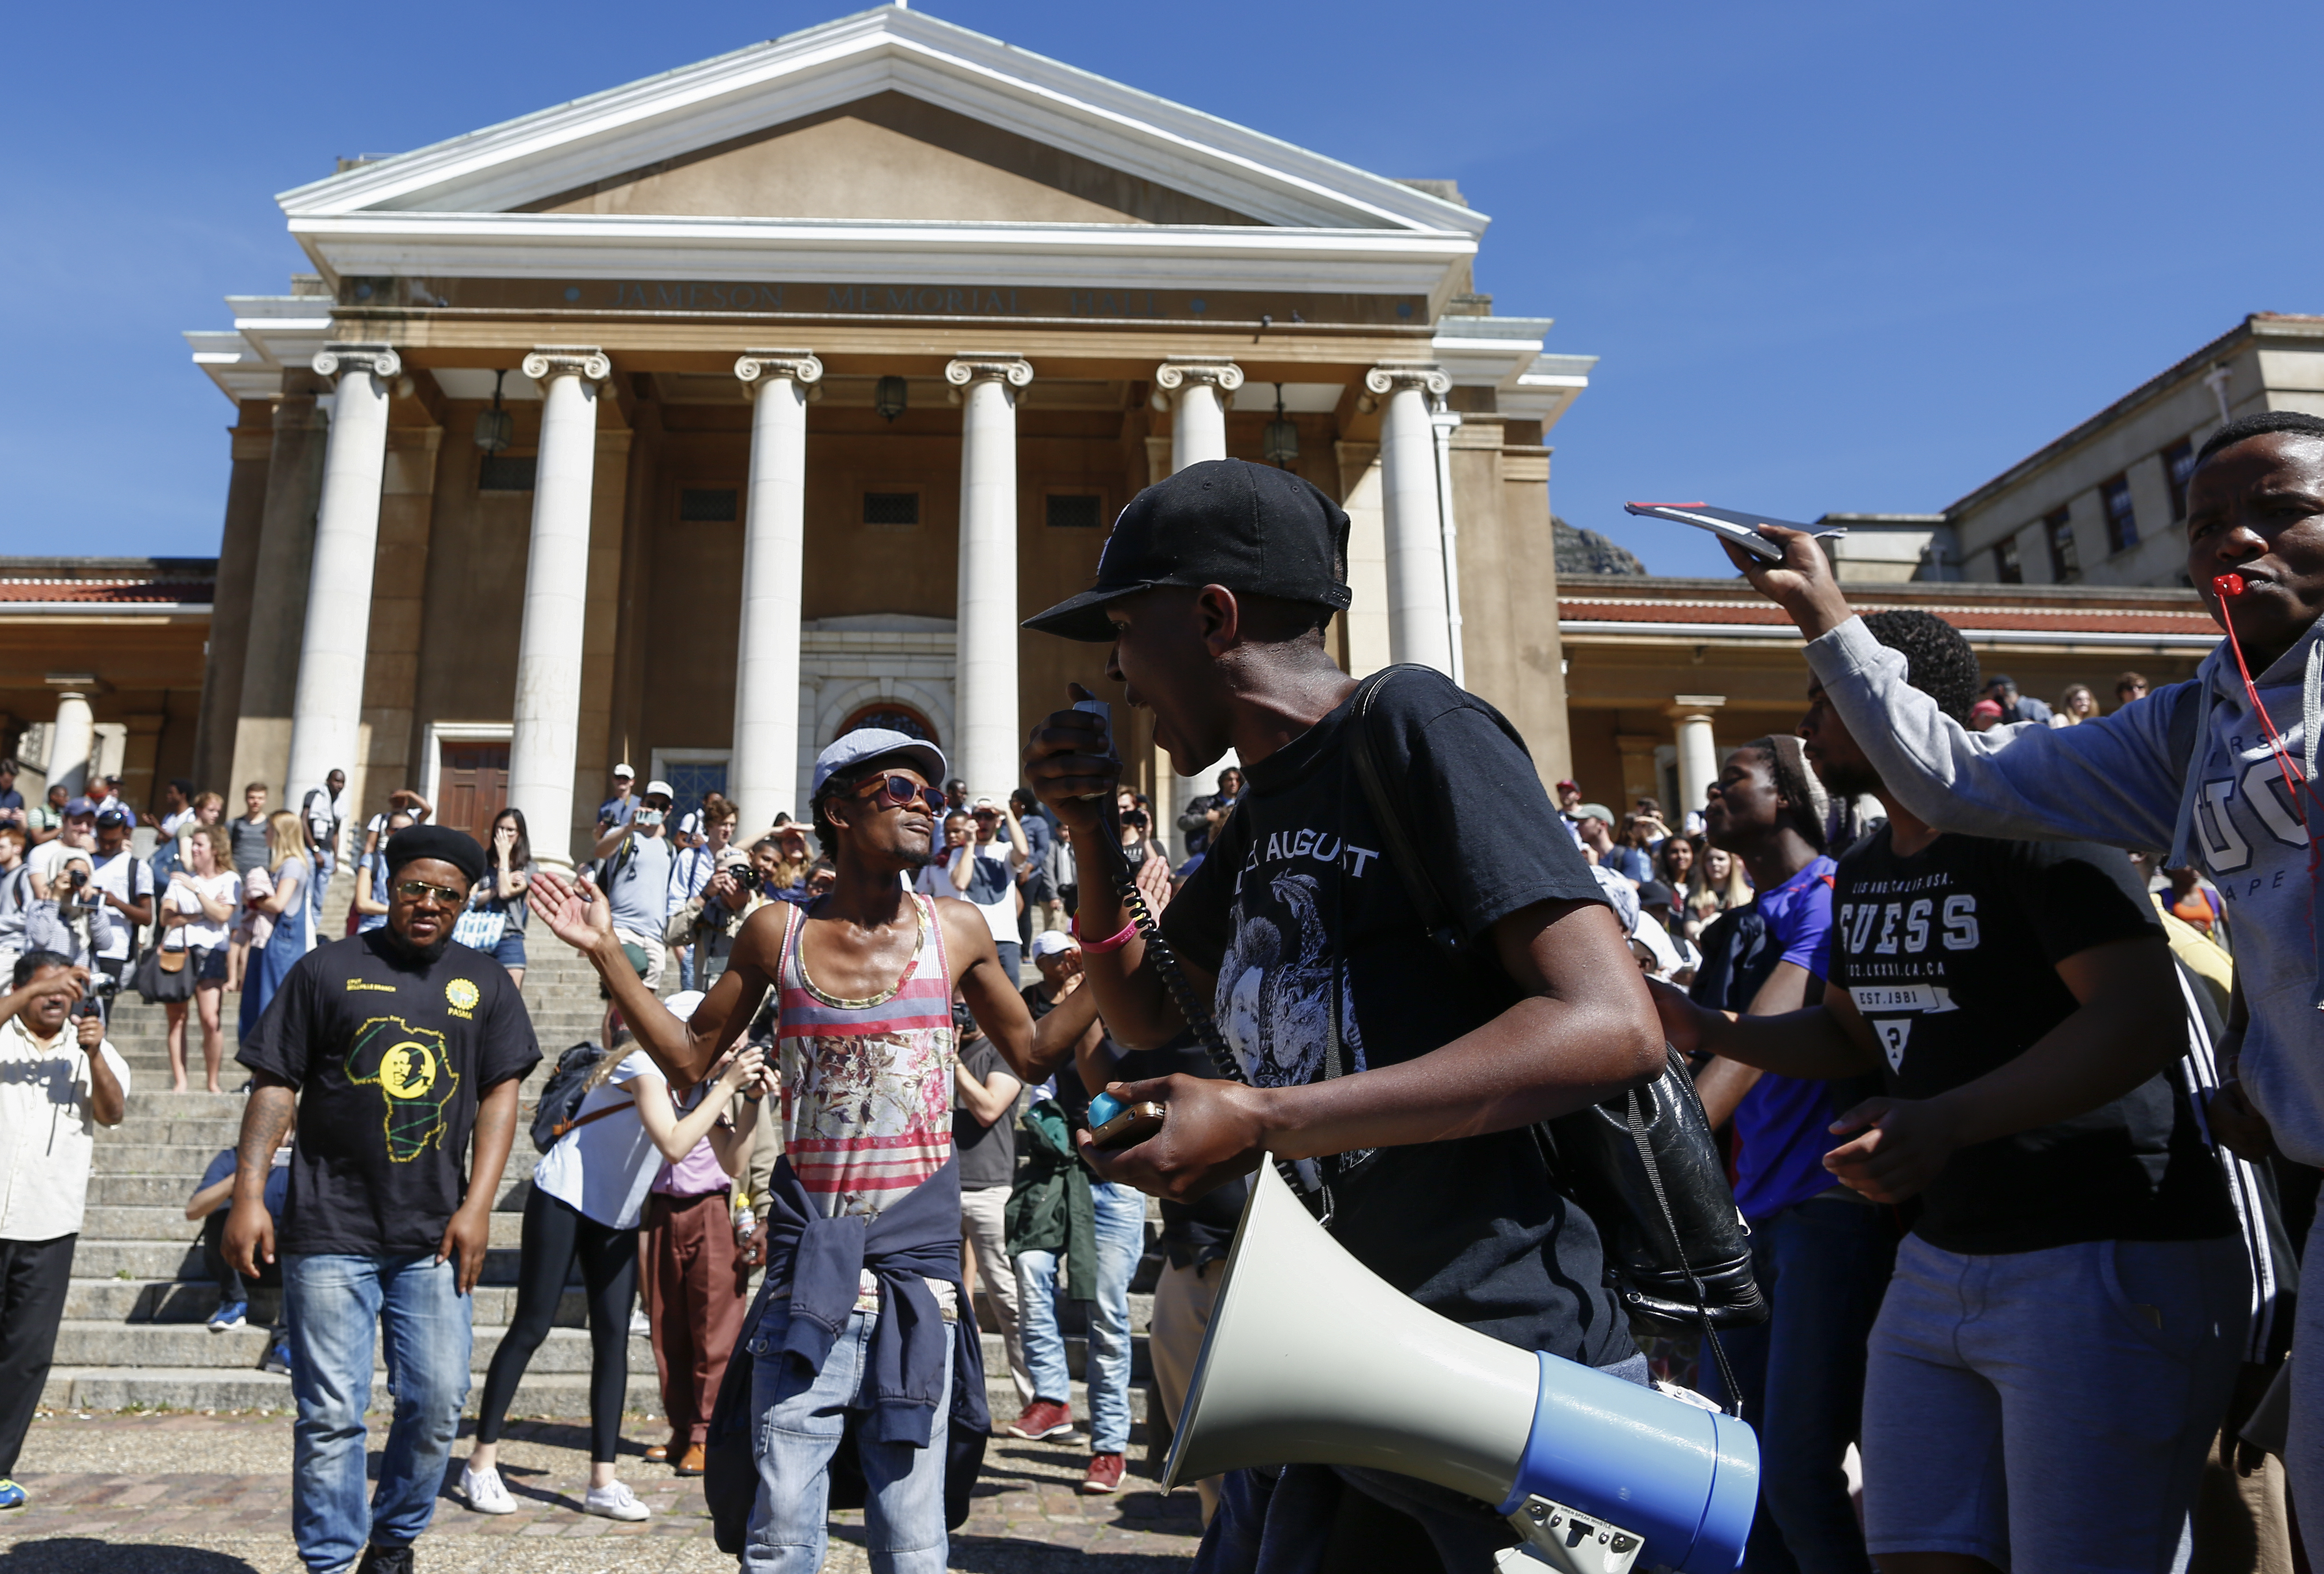 epa05568149 Students protest in support of the #FeesMustFall campaign ahead of disrupting lectures and the normal functioning of campus at the University of Cape Town (UCT) in Cape Town, South Africa, 03 October 2016. The small group of protesters  managed to shut down several lectures and disrupt the majority of students who wish to complete the year. Protests against tuition fees continued at universities across the country.  EPA/NIC BOTHMA